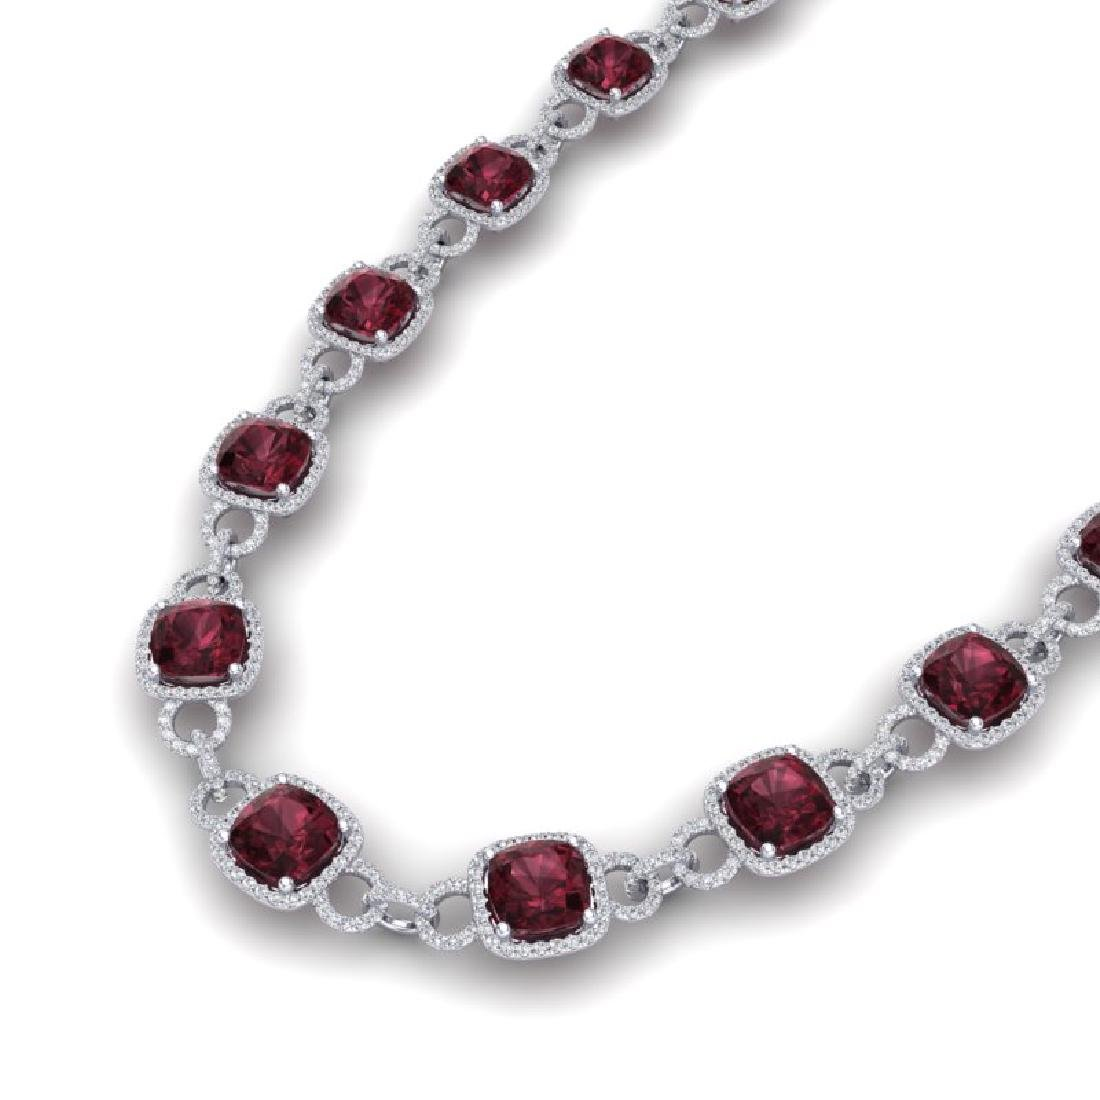 66 CTW Garnet & VS/SI Diamond Necklace 14K White Gold